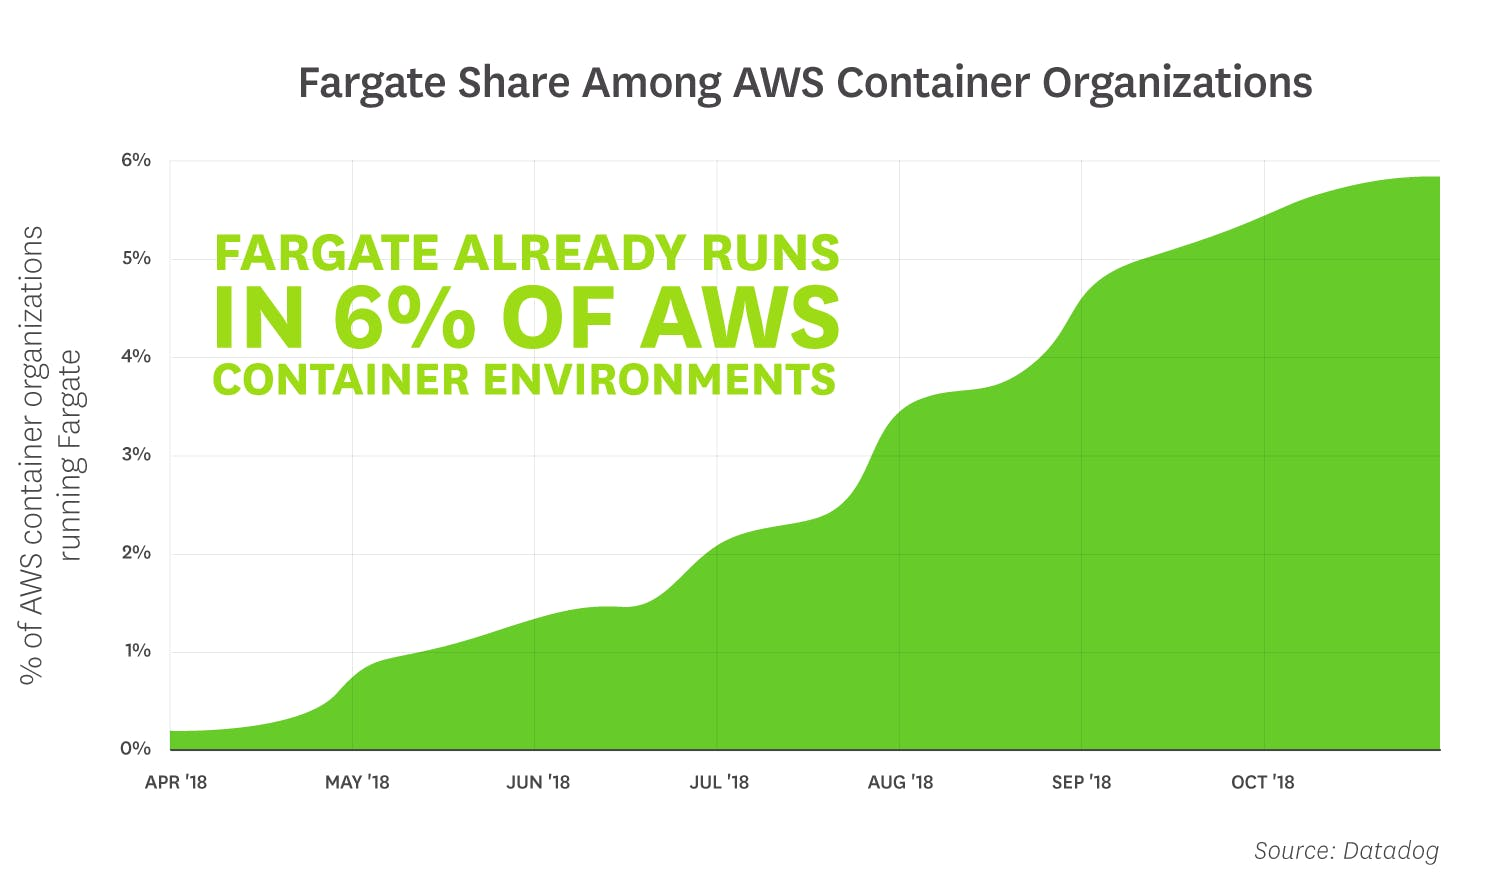 container-orchestration-2018/orchestration-2018-fact-4-v2.png